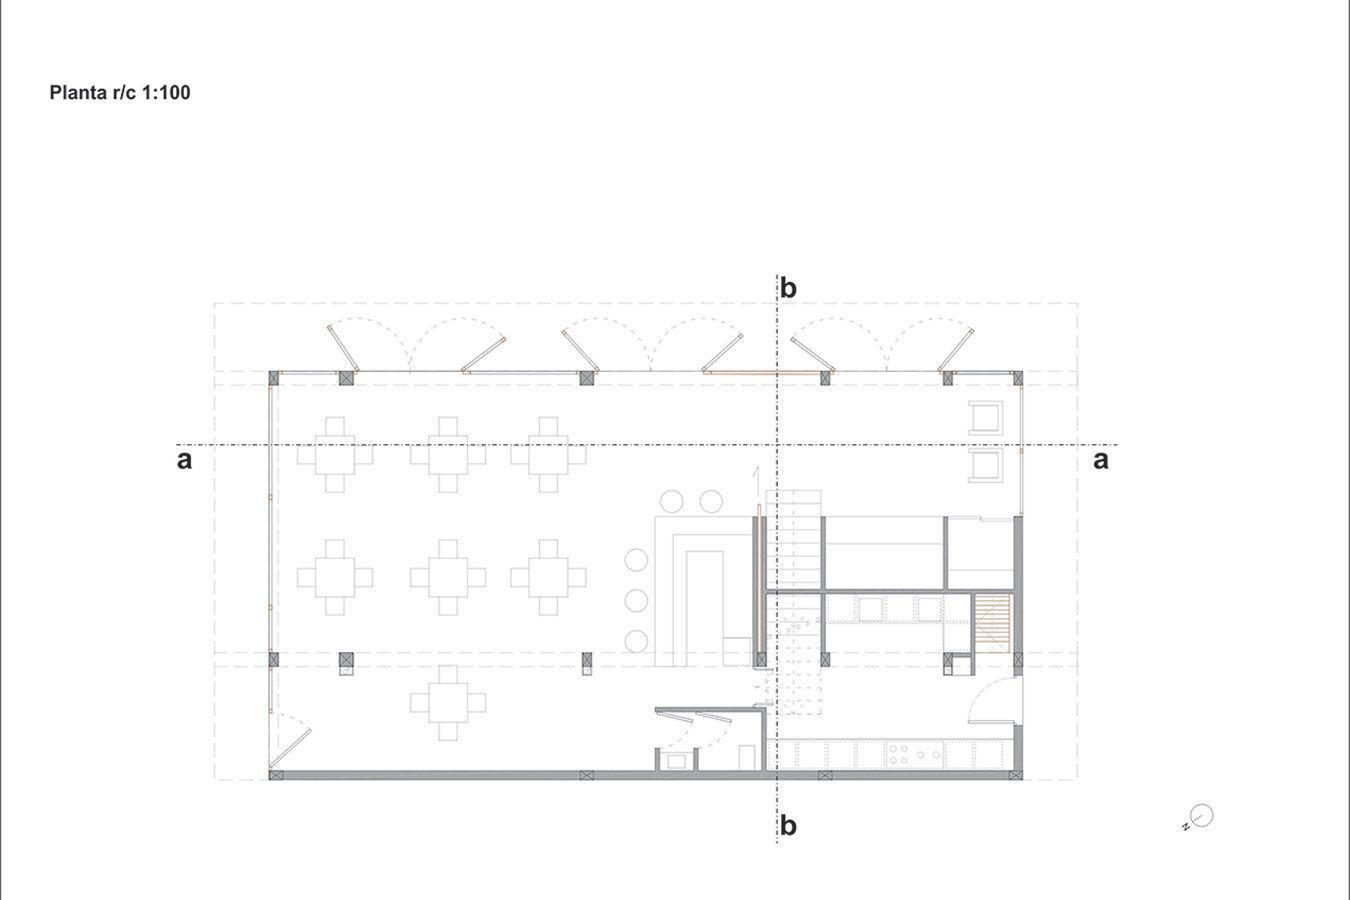 acquiles eco hotel_25_Ramos Castellano Architects_01_Floor plans.jpg